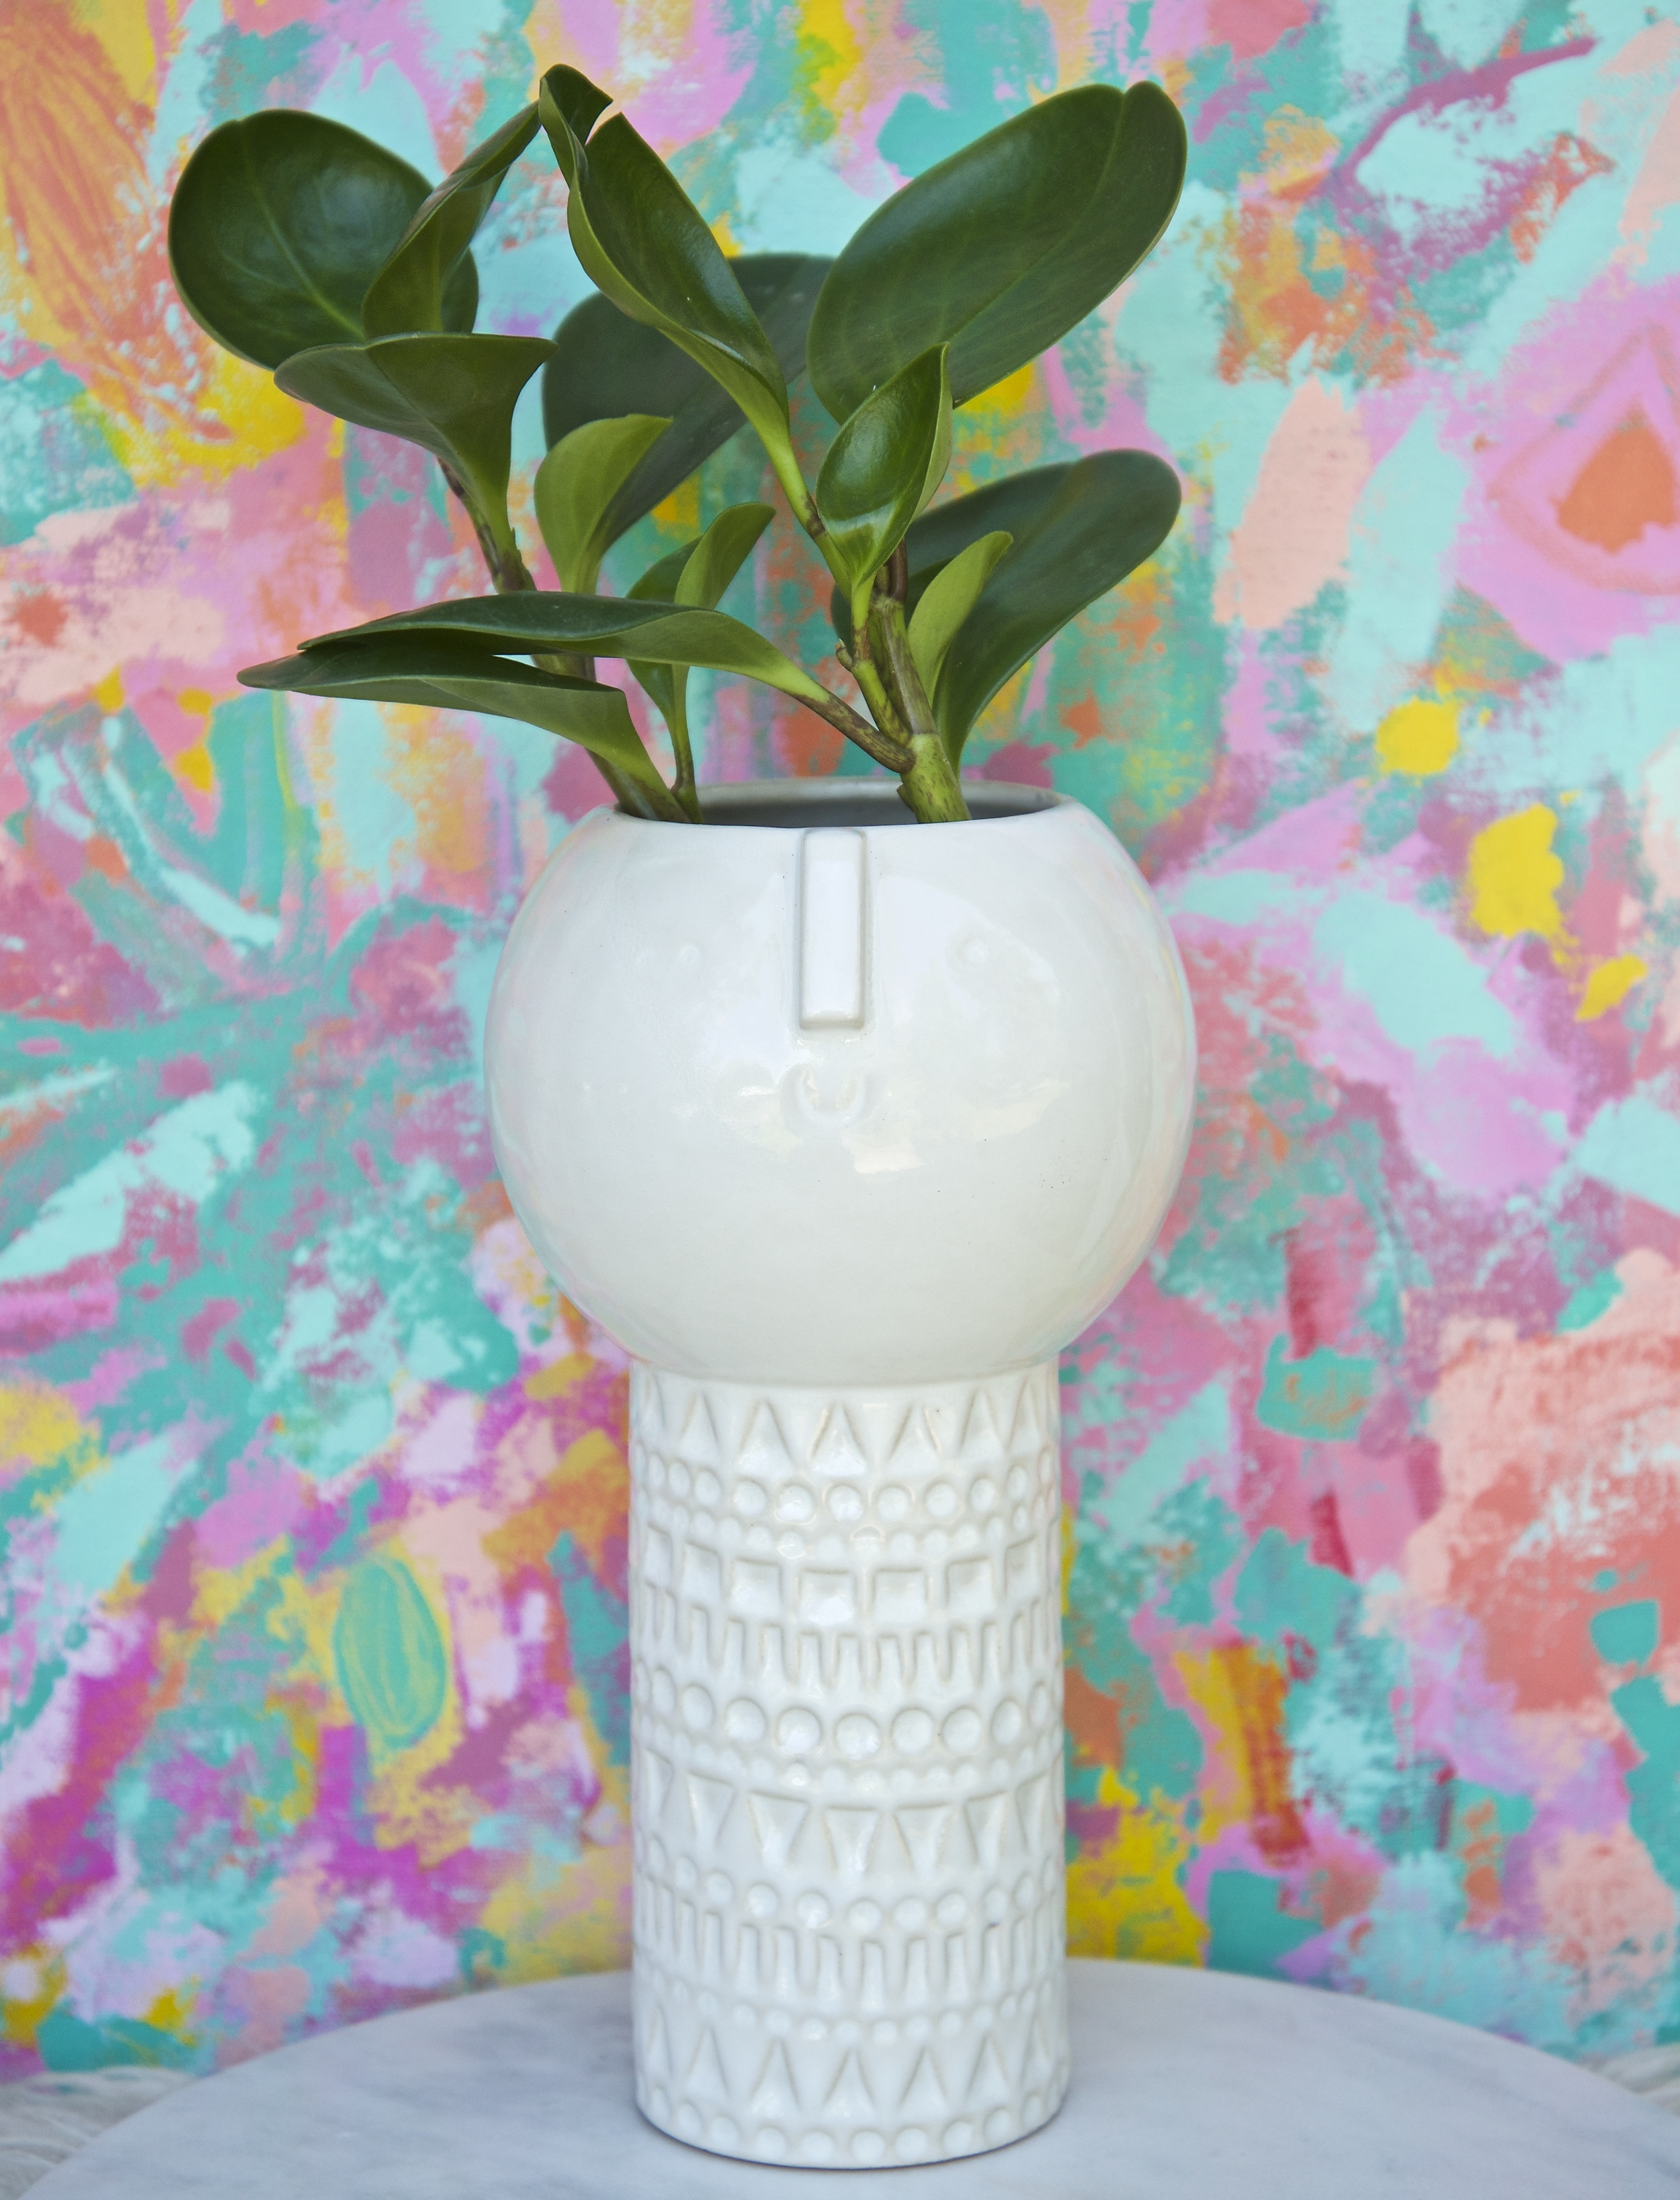 """Established in 2012, Atelier Stella is an ever changing collection of unique ceramics hand made by Stella Baggott in Brighton, England. I purchased this amazing vase at West Elm, its got a retro vibe that I adore.I love how they collaborate with artisans and makers all over the world. It's already found a new home in our living room.  """"My work is modern, stylish and brings a smile! I lovingly design, hand build, fire in my kiln and glaze small batches of work to give you a truly unique, one of a kind work of art, so if you like a piece grab it while you can!I design pieces for those who like vintage finds."""""""